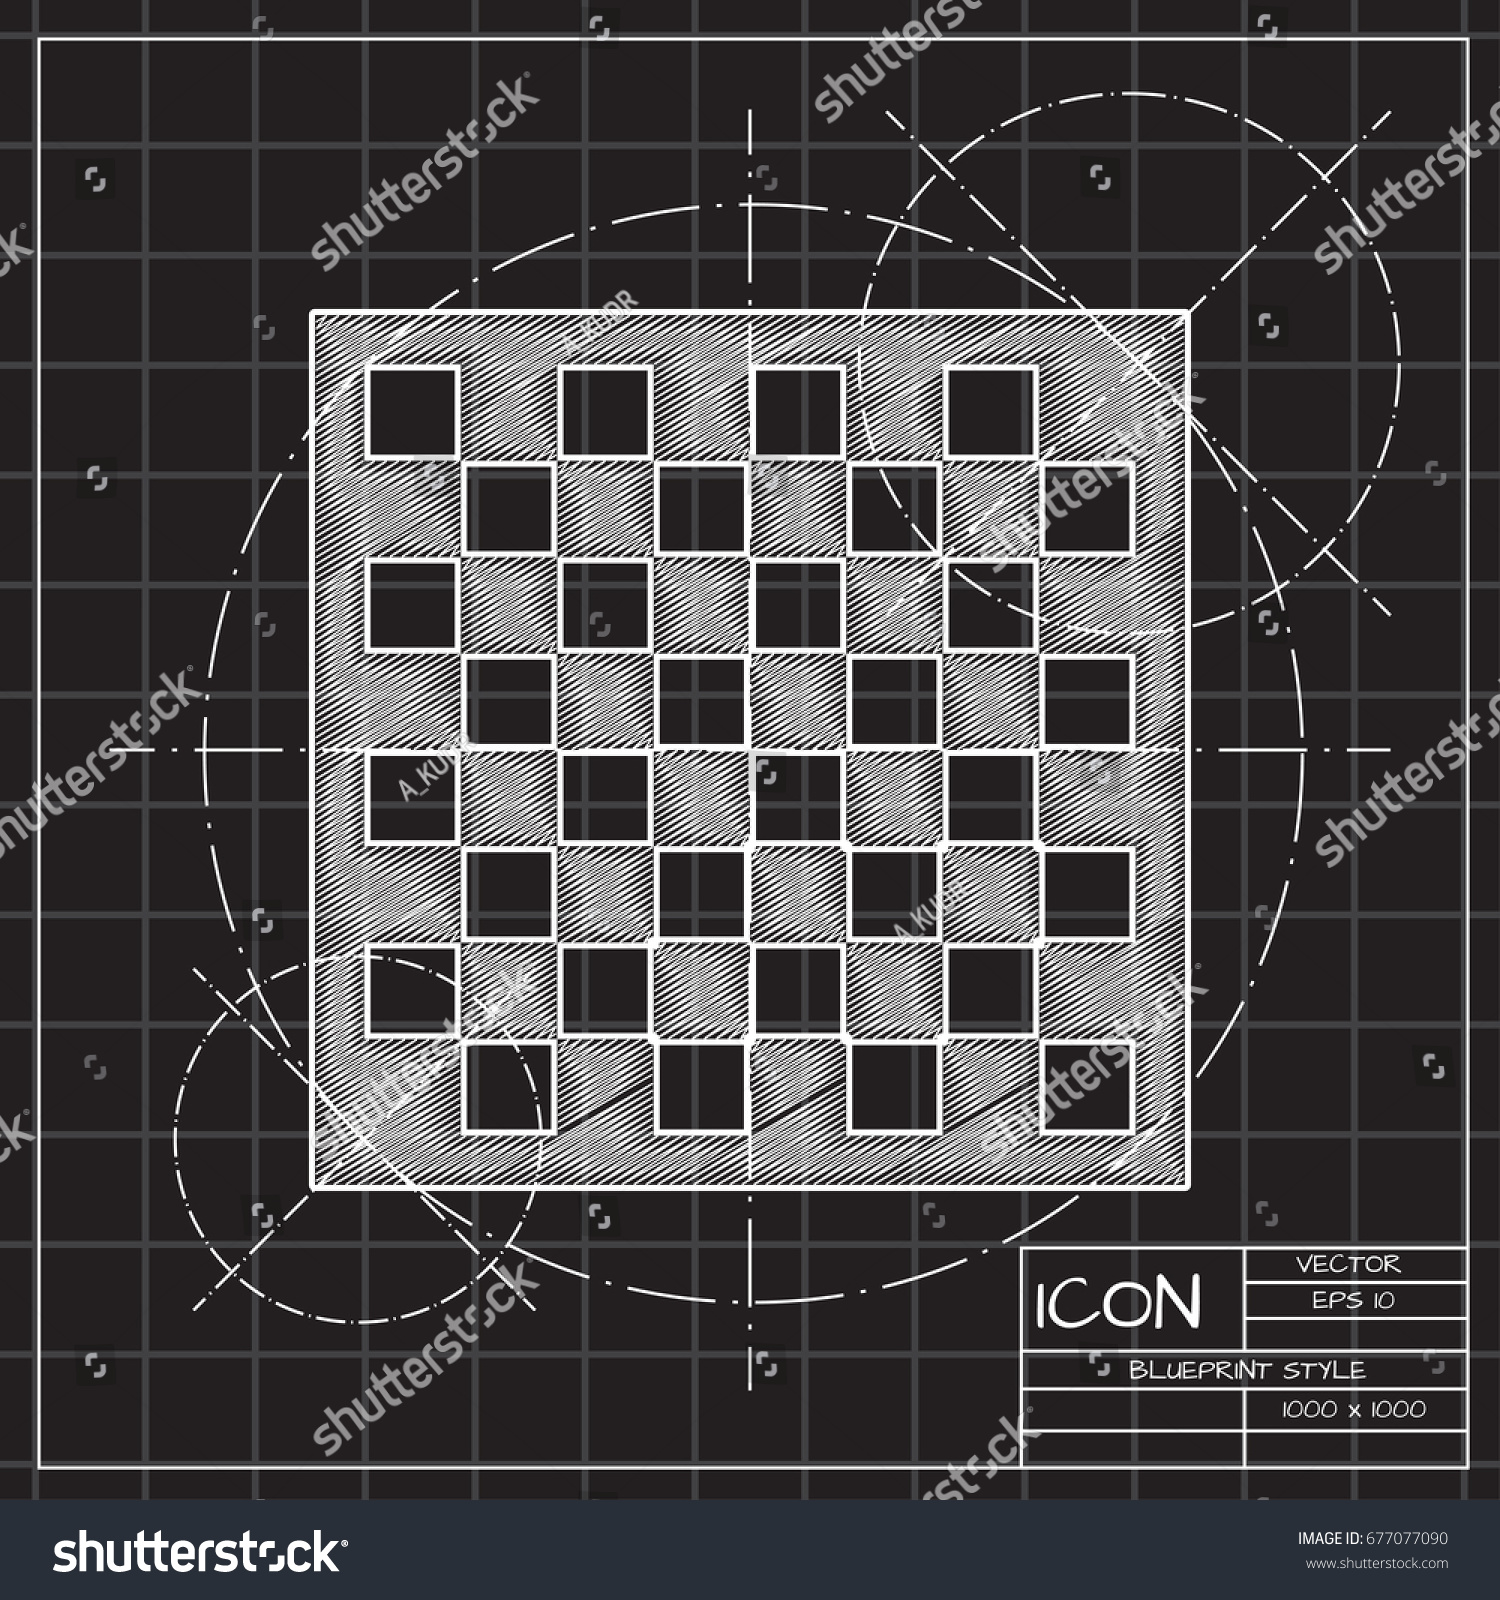 Vector blueprint checkers board icon on stock vector 2018 vector blueprint checkers board icon on engineer and architect background malvernweather Image collections